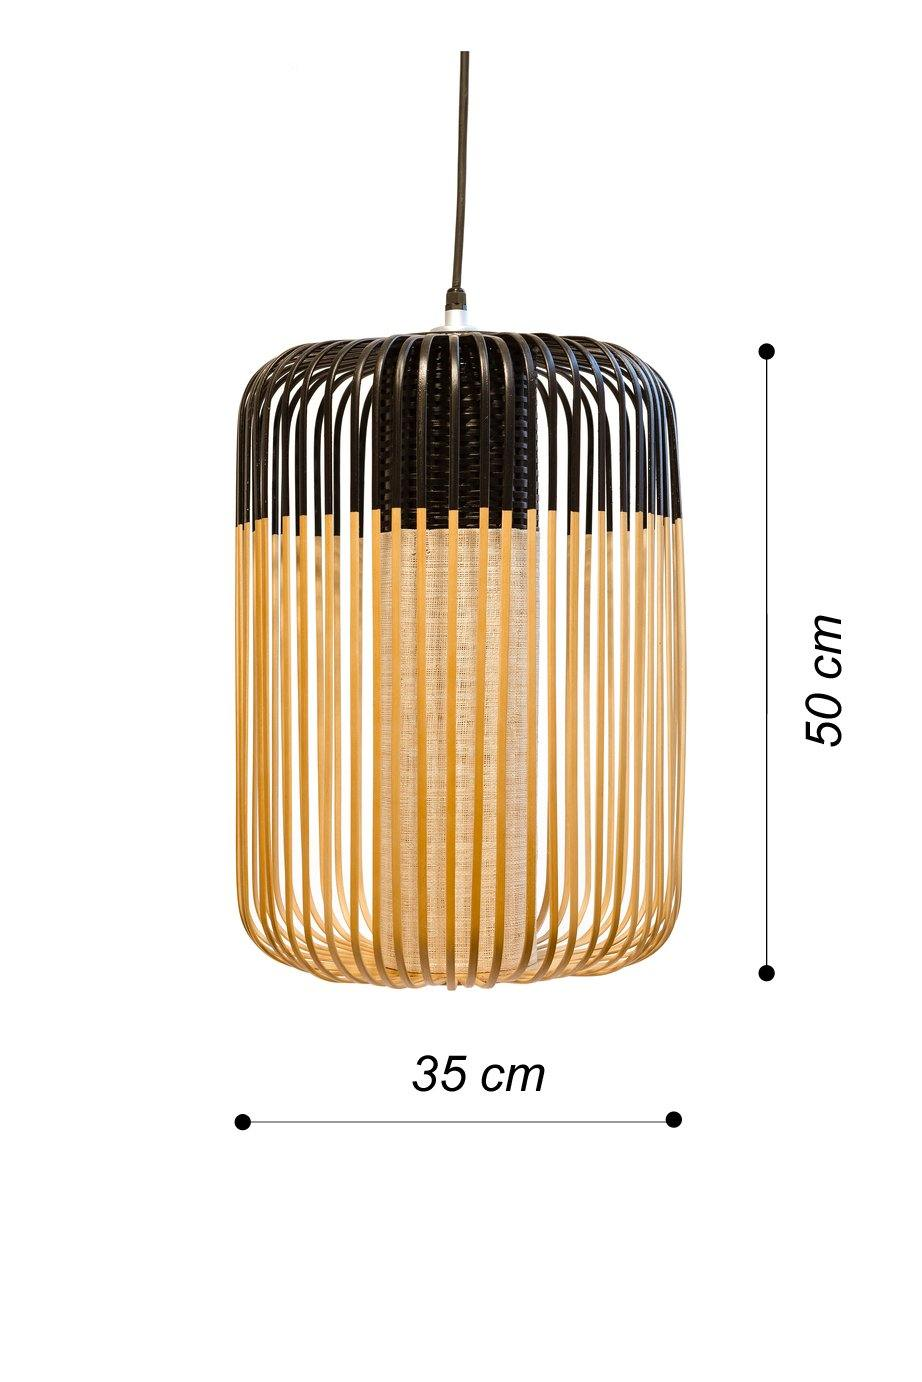 SUSPENSION BAMBOO L NEGRO - CARMAN Showroom